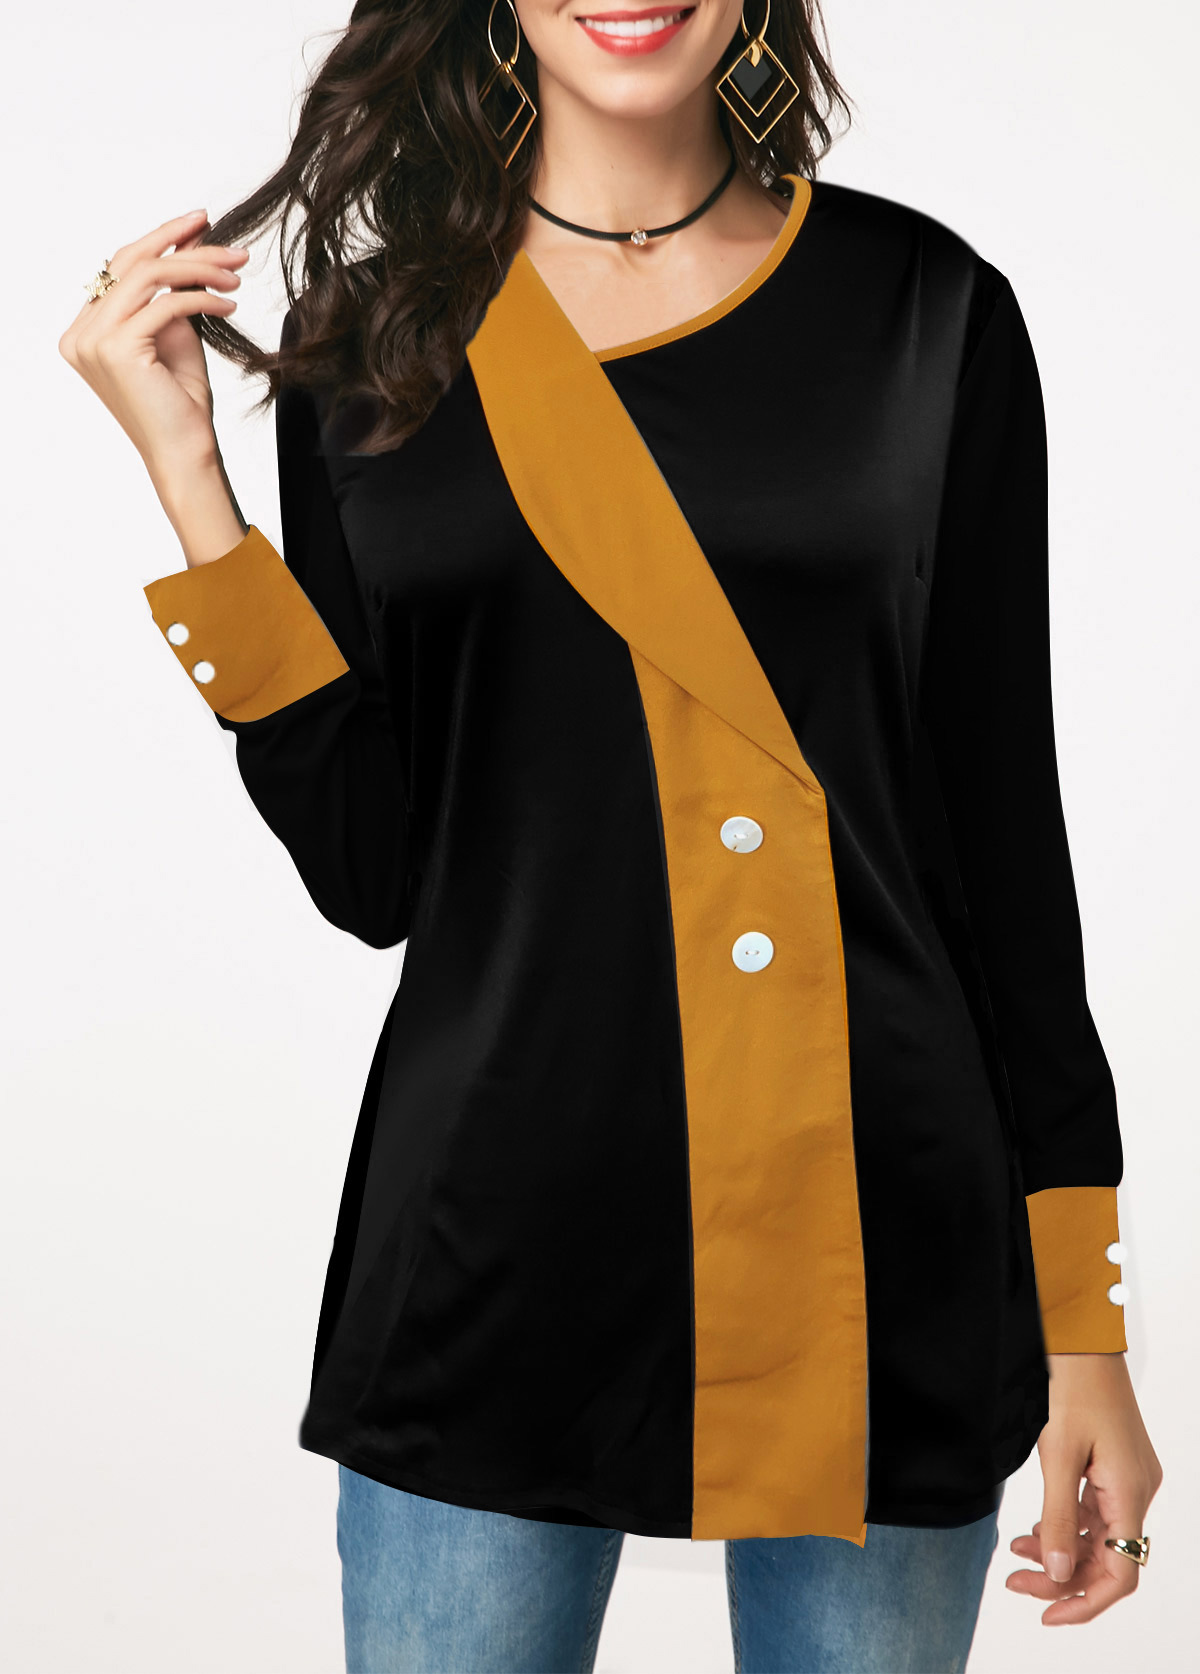 ROTITA Button Detail Asymmetric Neckline Contrast Panel T Shirt